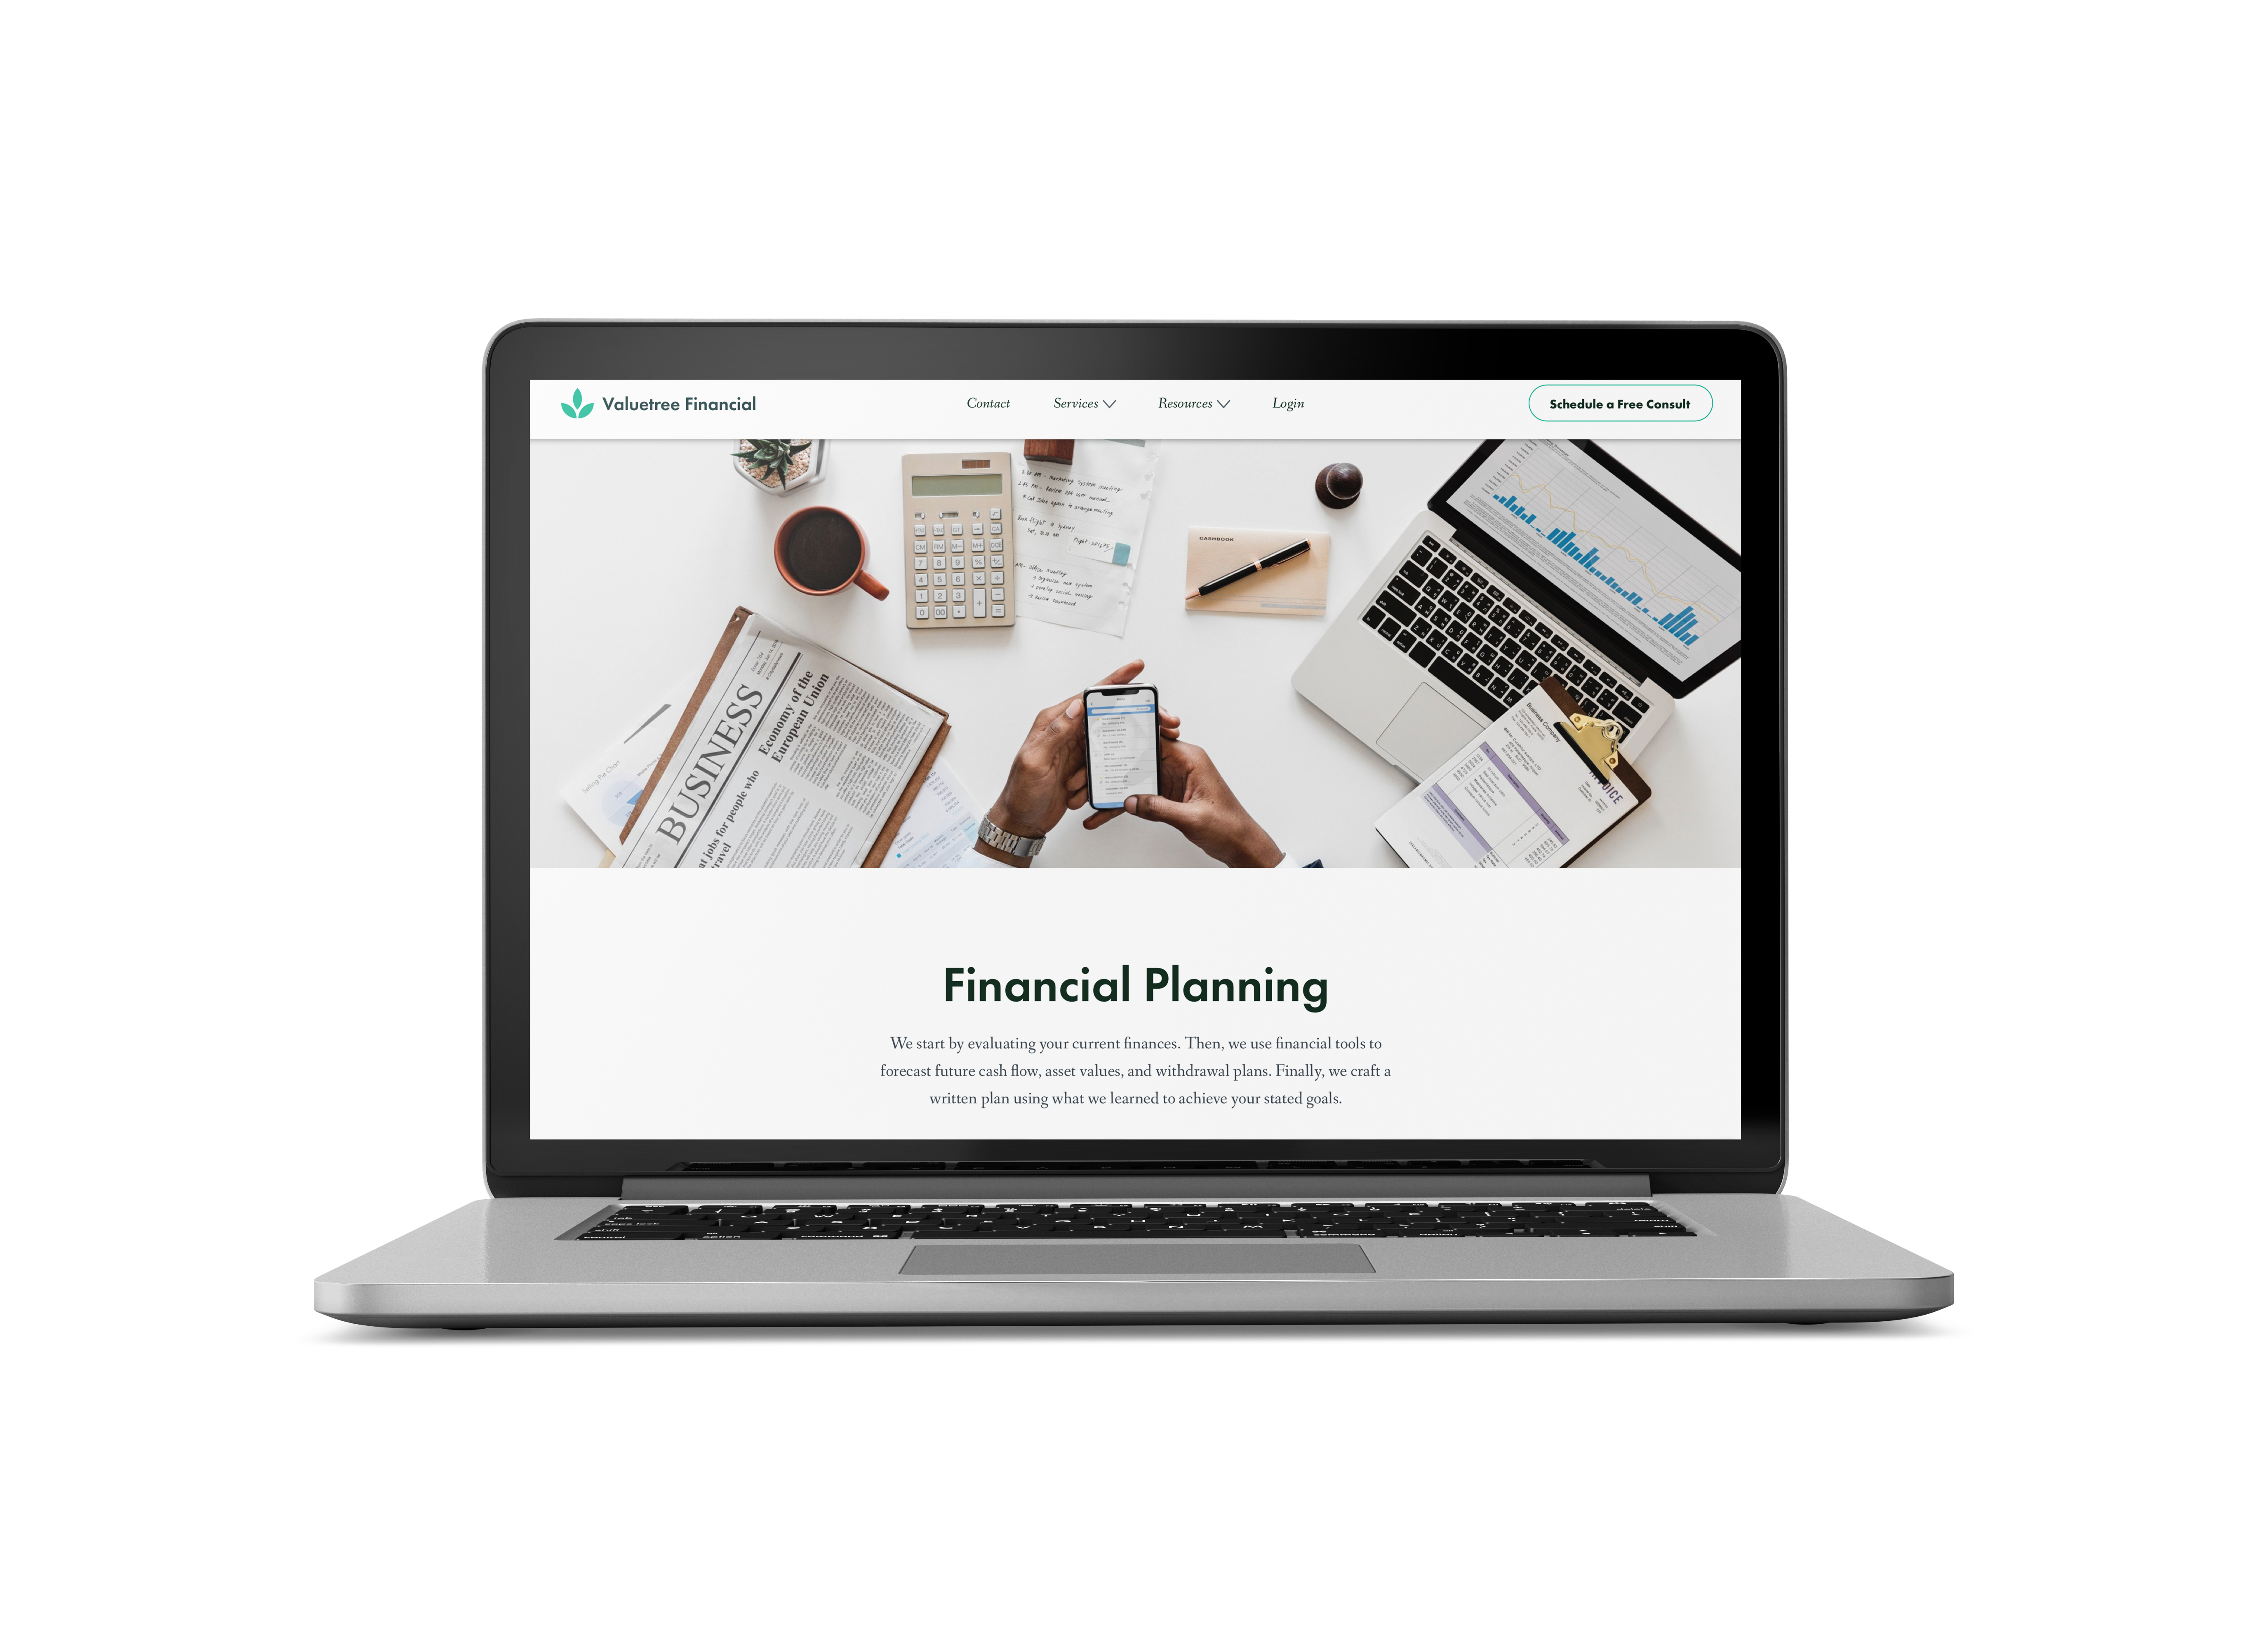 Mockup of the financial planning service page displayed on a macbook laptop.